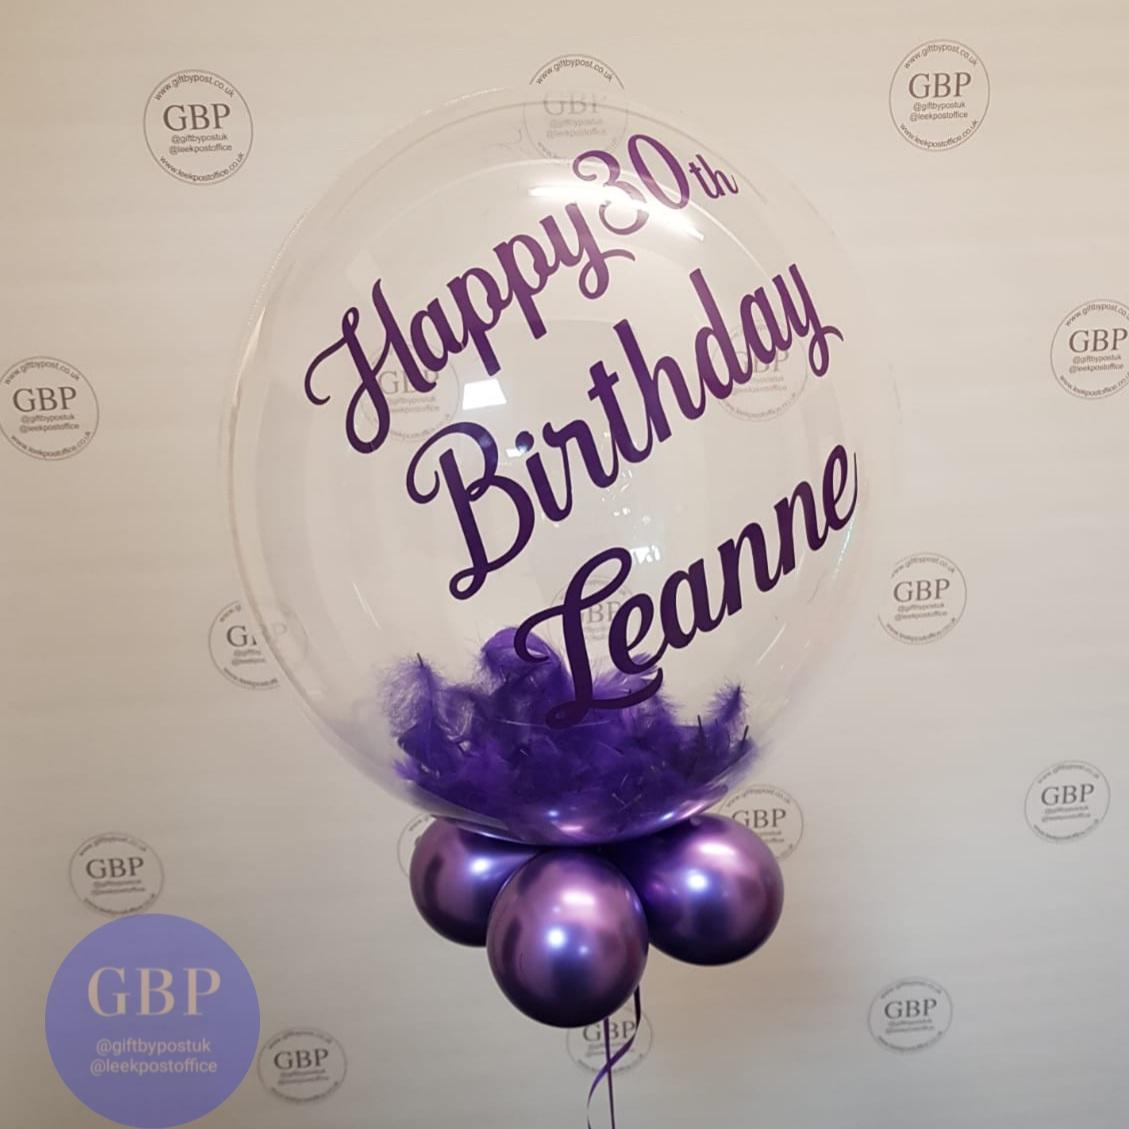 Bubble balloon, contains feathers, purple theme